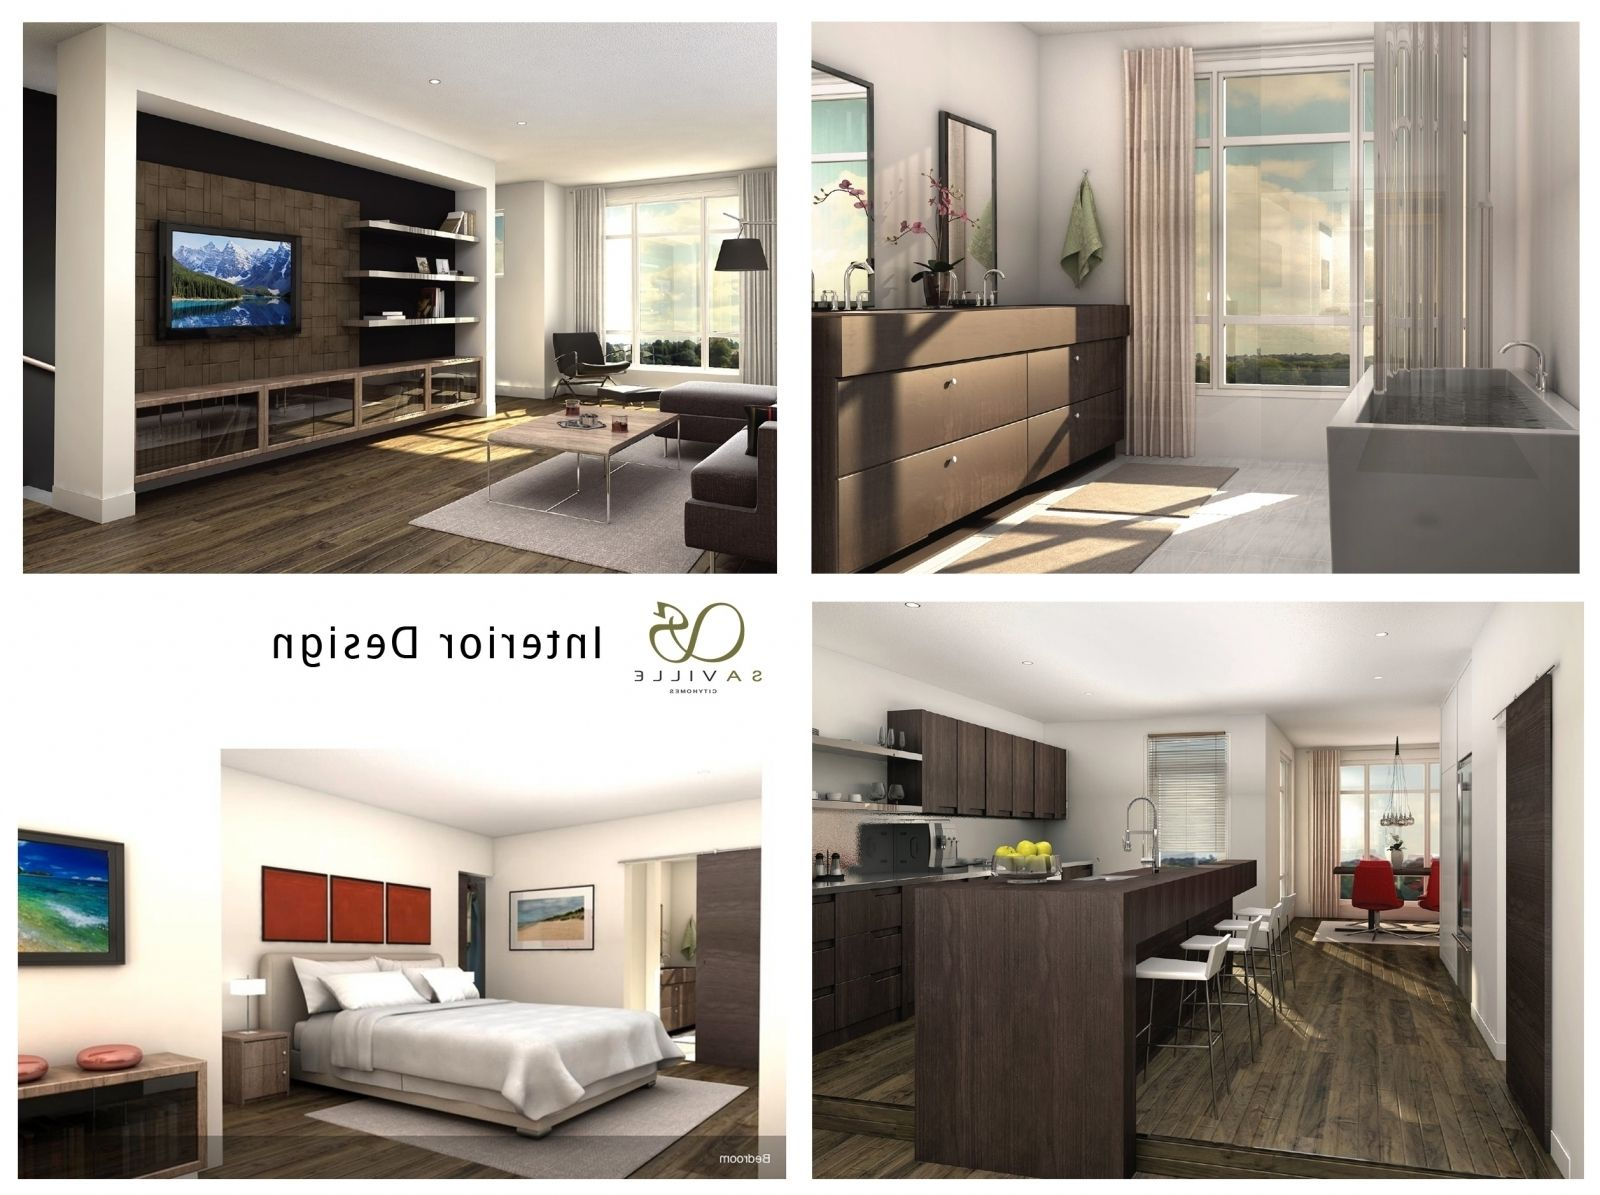 Apps To Design My Bedroom Design Your Own Bedroom Design Your Bedroom Interior Design Games